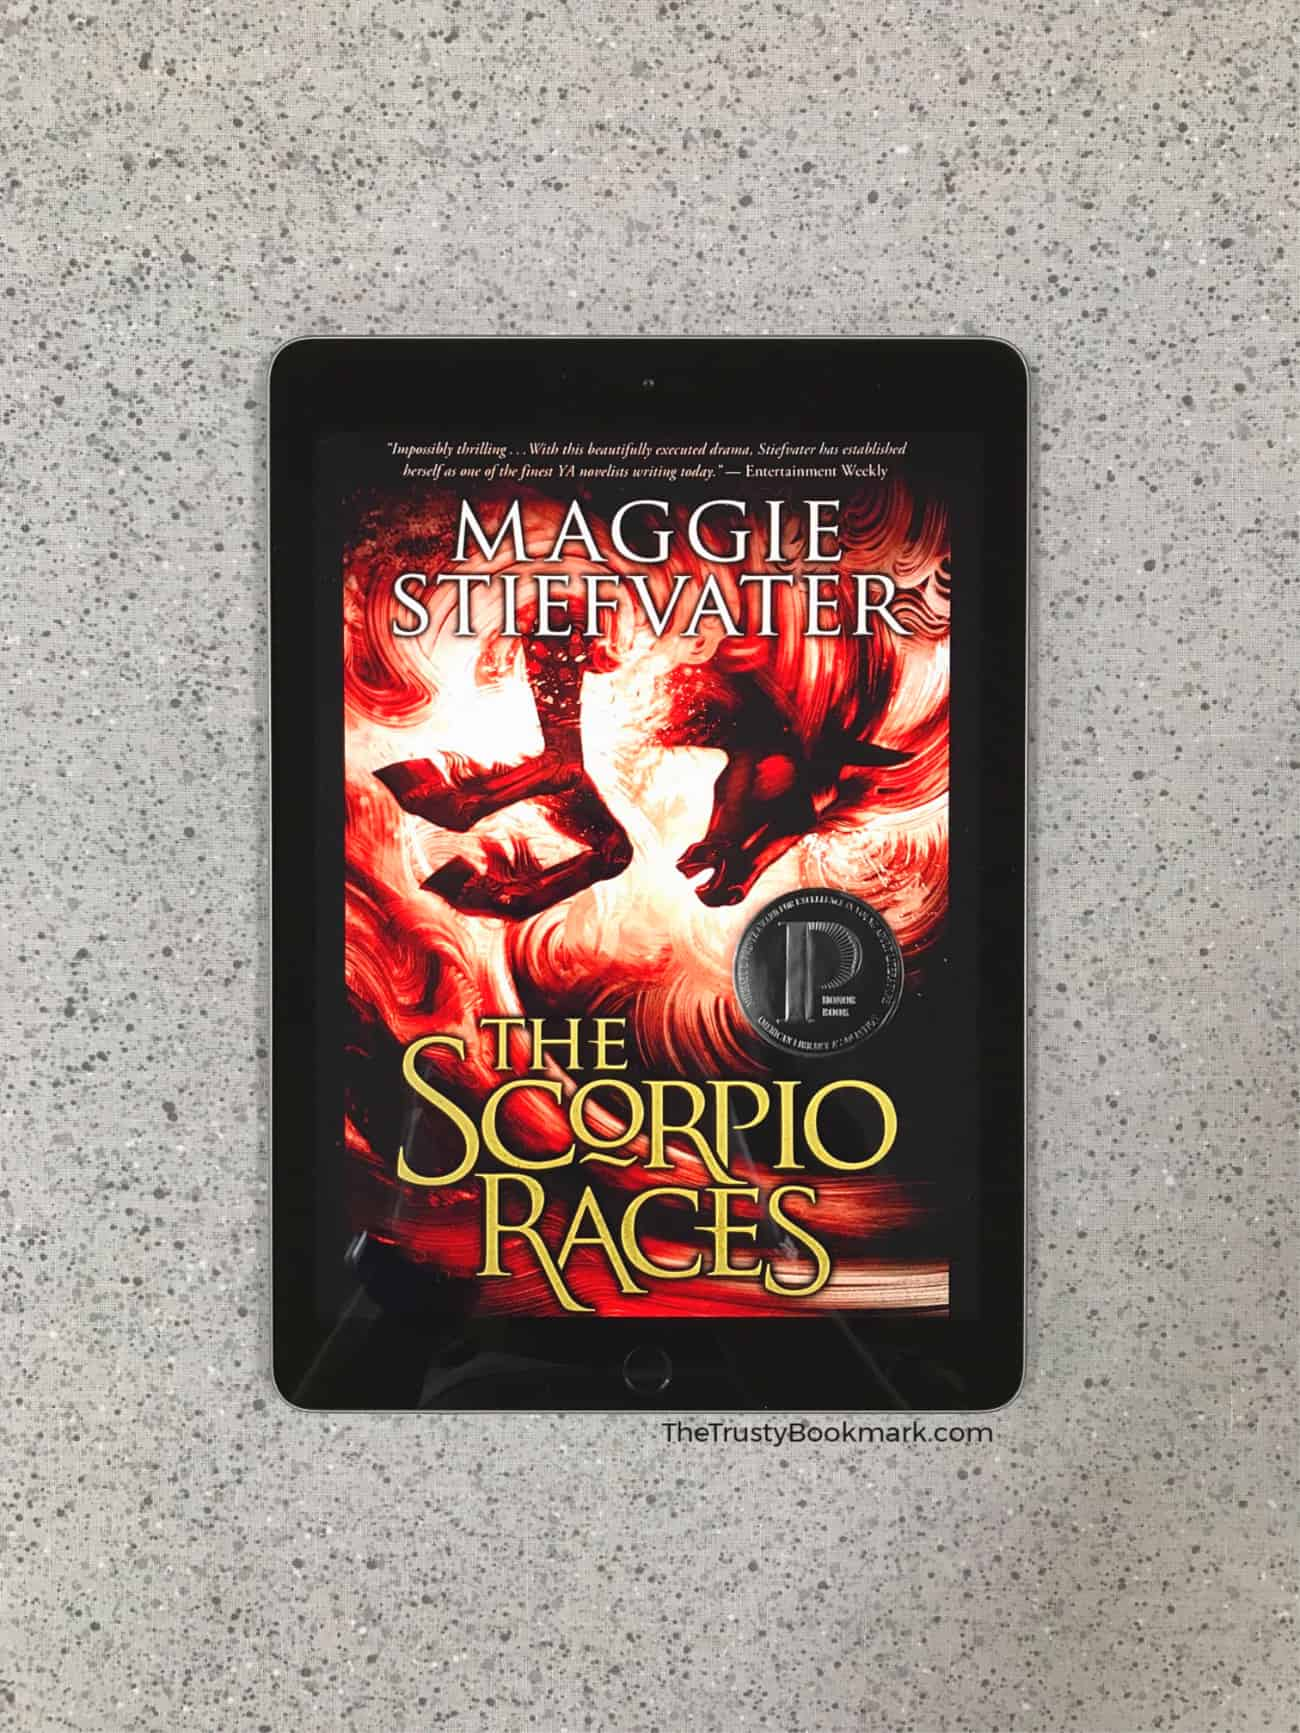 Book Review: Scorpio Races [The Trusty Bookmark]